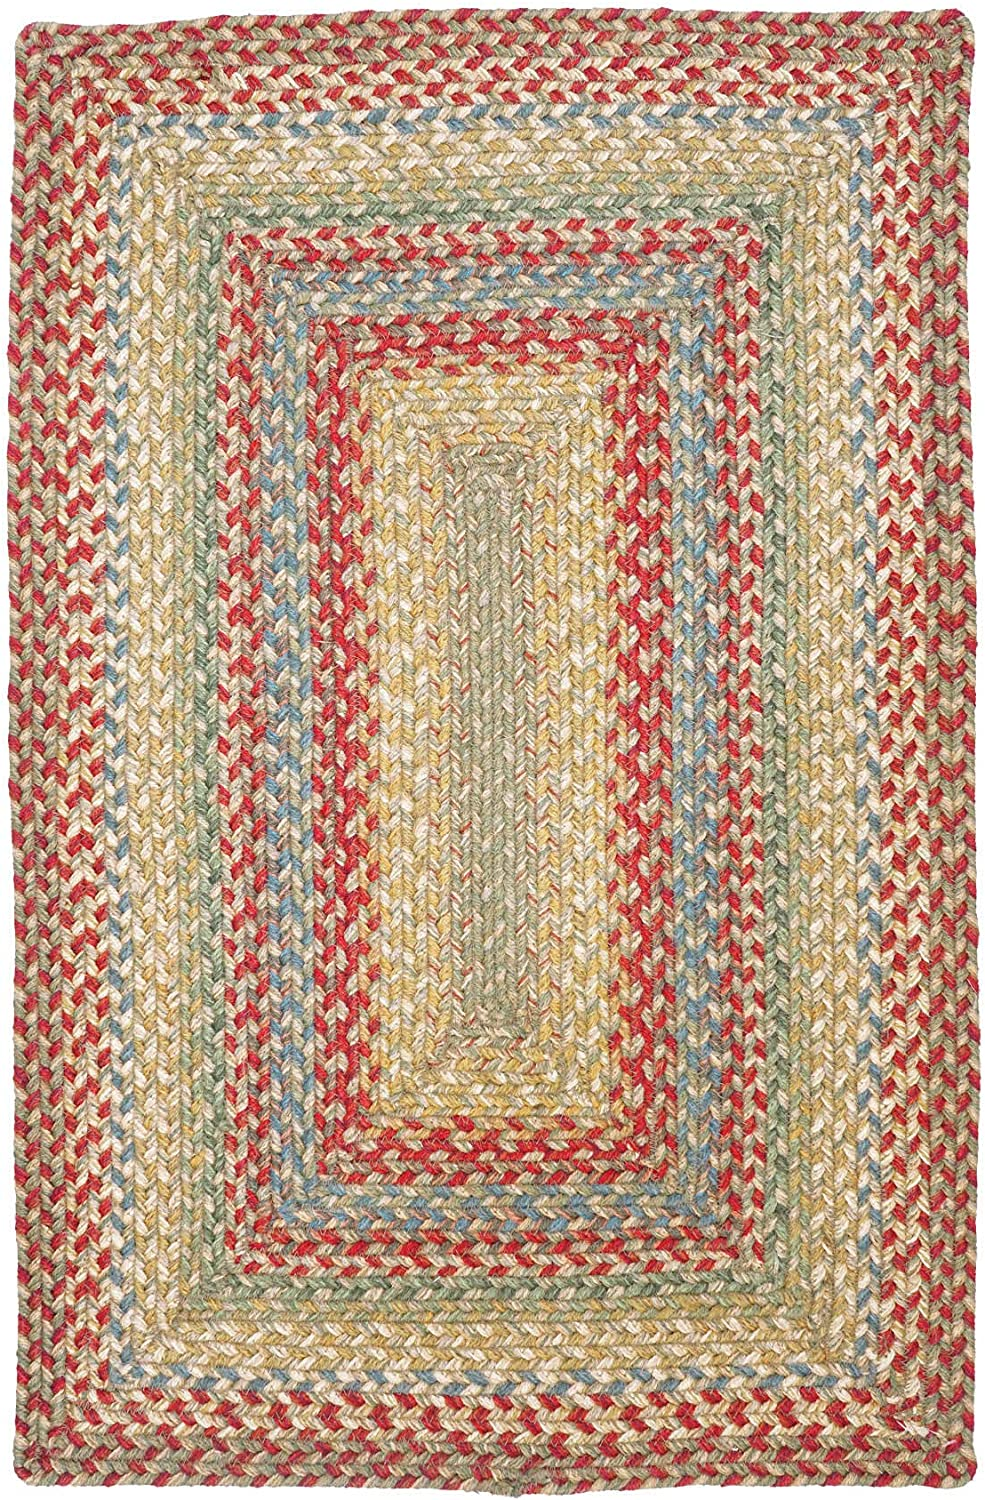 "Azalea Premium Jute Braided Area Rug by Homespice, 20"" x 30"" Rectangular Red - Tan - Beige - Blue, Reversible, Natural Jute Yarn Rustic, Country, Primitive, Farmhouse Style - 30 Day Risk Free Purchase"